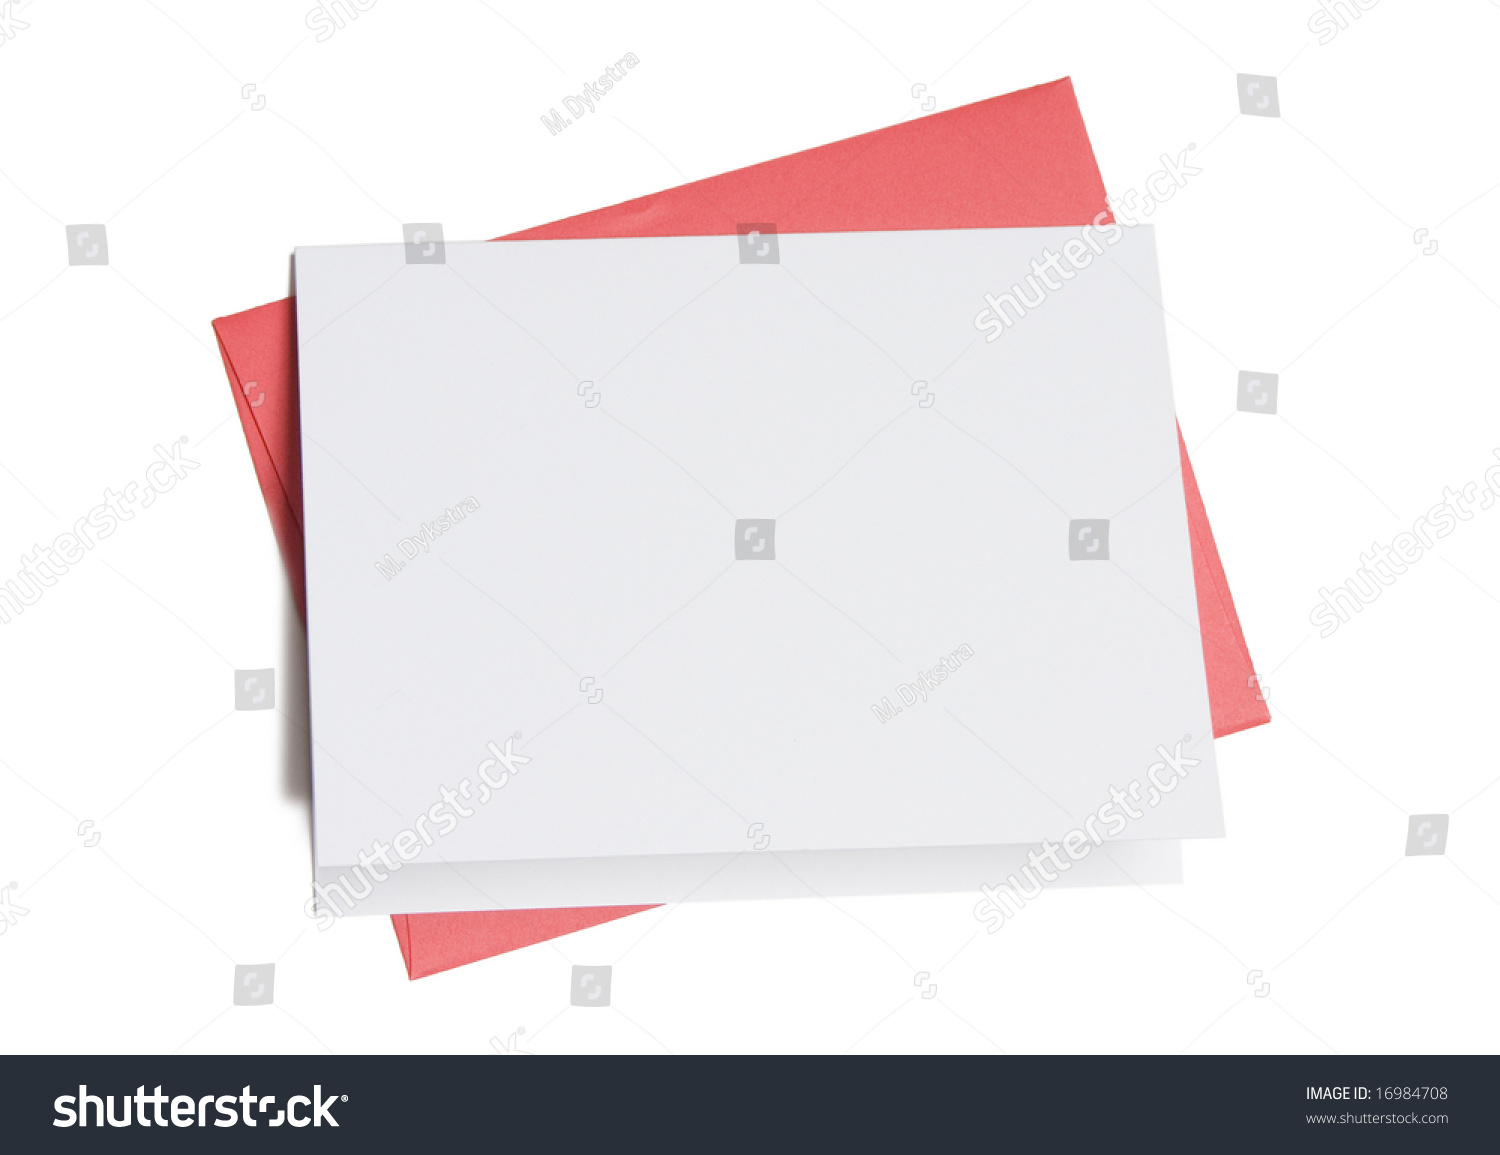 Colored card stock and envelopes - Blank Greeting Card On Top Of Colored Envelope Isolated On White Background